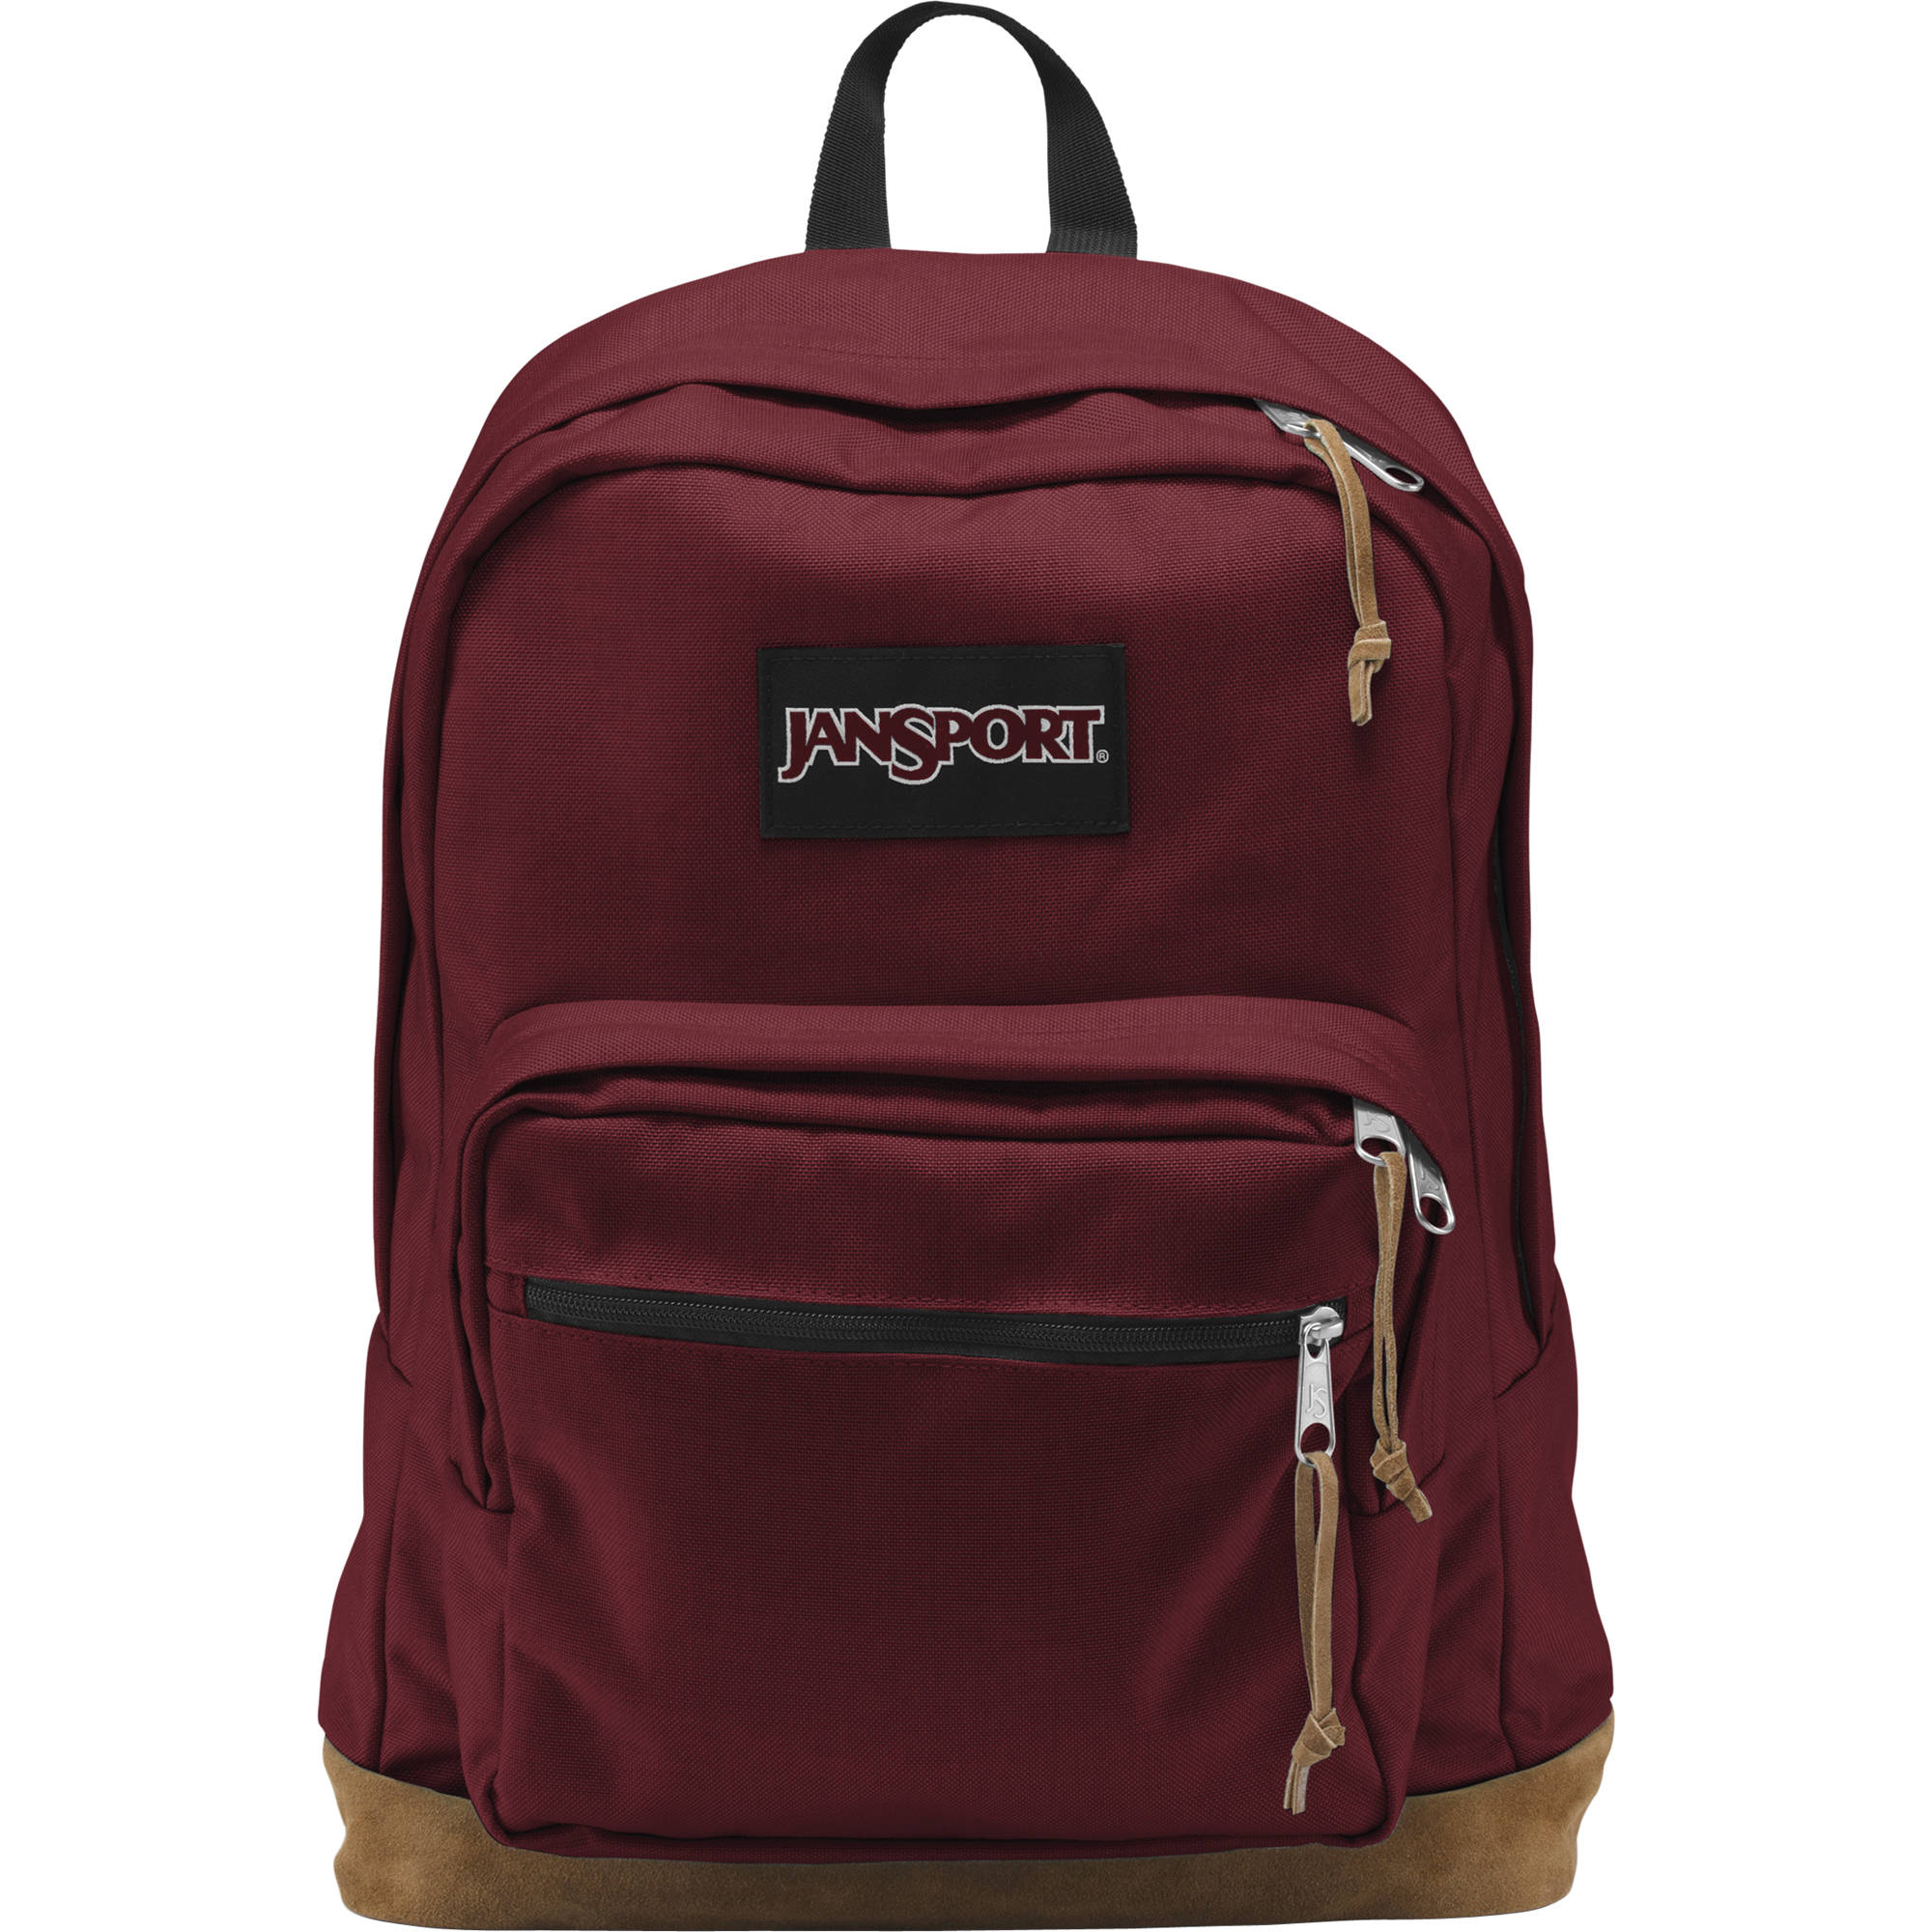 JanSport Right Pack Backpack (Viking Red) TYP79FL B&H Photo